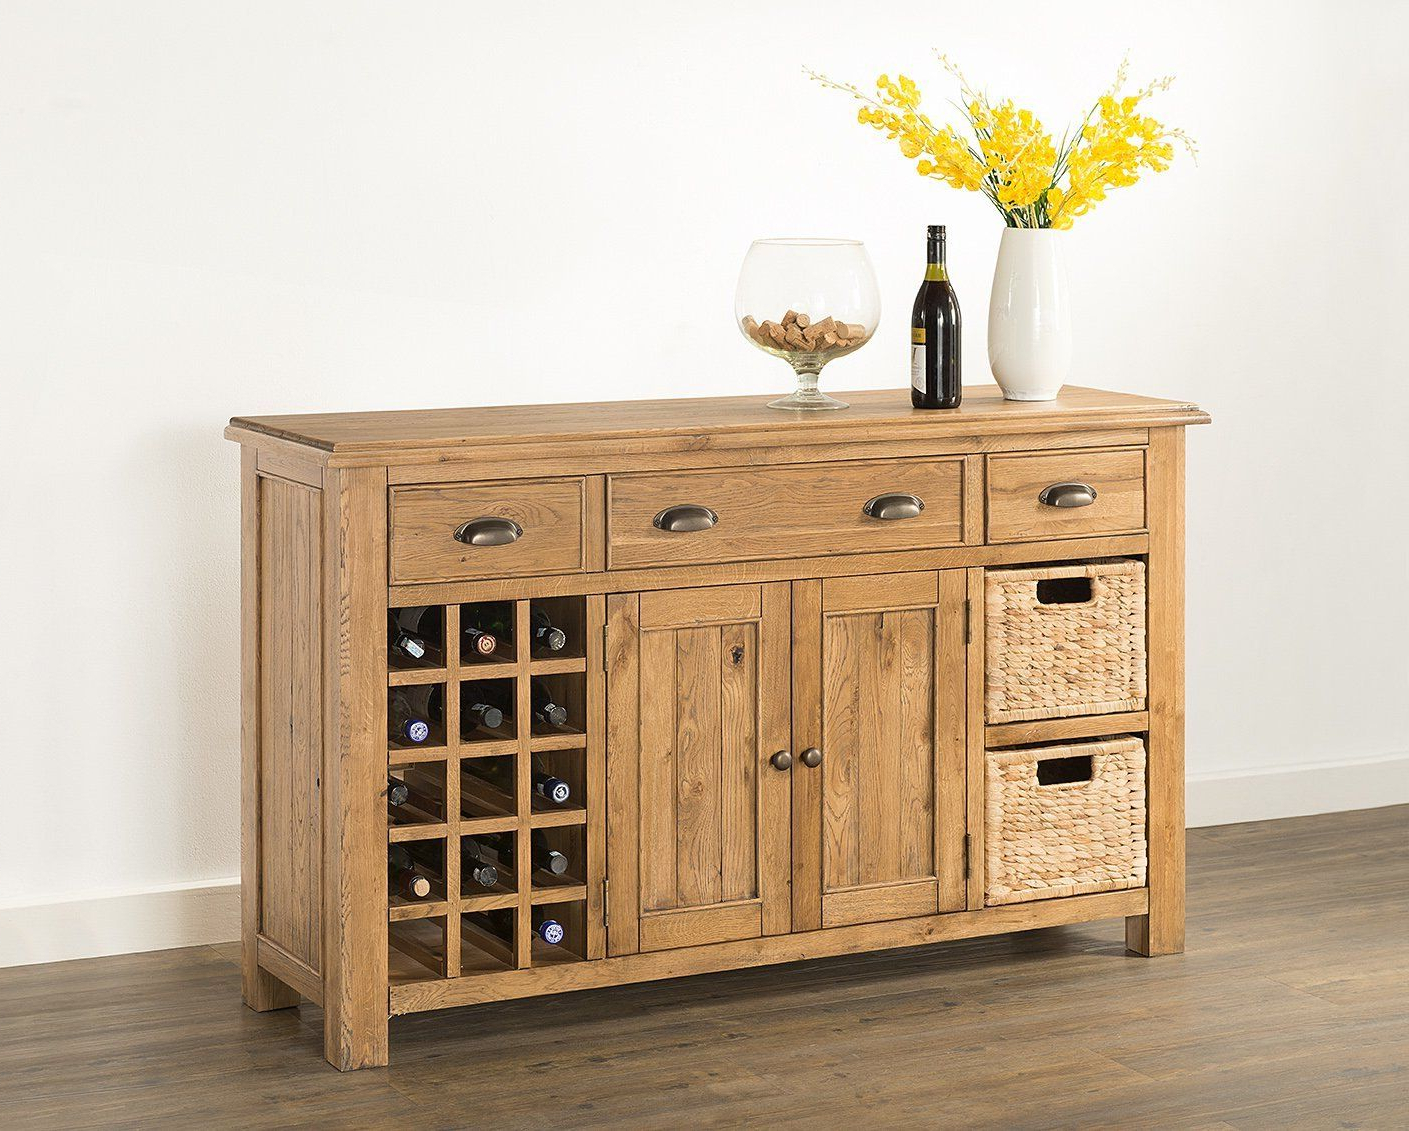 Kendall Sideboards With Regard To Most Recent Kendall Oak Large Sideboard With Wine Rack/baskets (View 19 of 20)